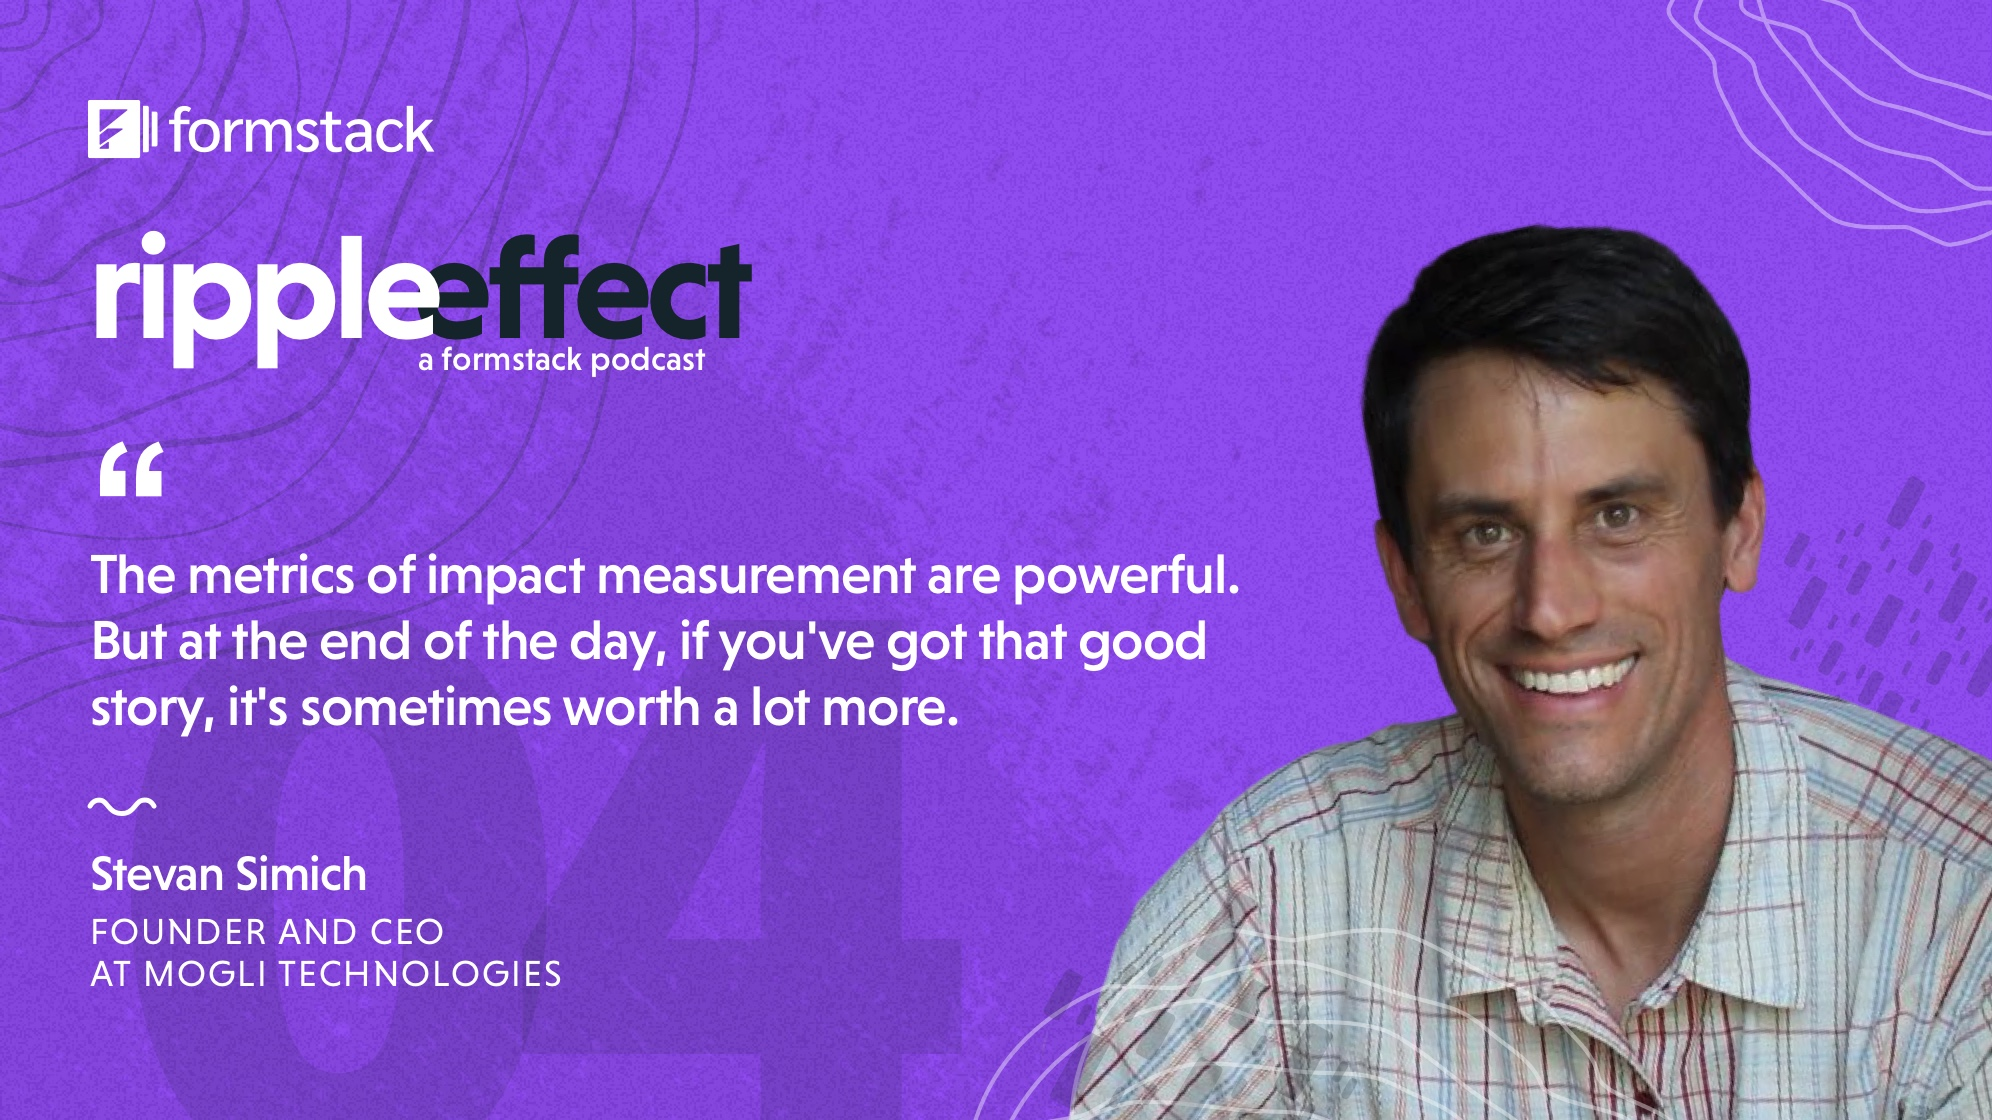 The metrics of impact measurement are awesome and powerful and incredible, and you have to track them. But at the end of the day, if you've got that good story, it's worth sometimes a lot more. Stories are super important. Stevan Simich, CEO of Mogli Technologies